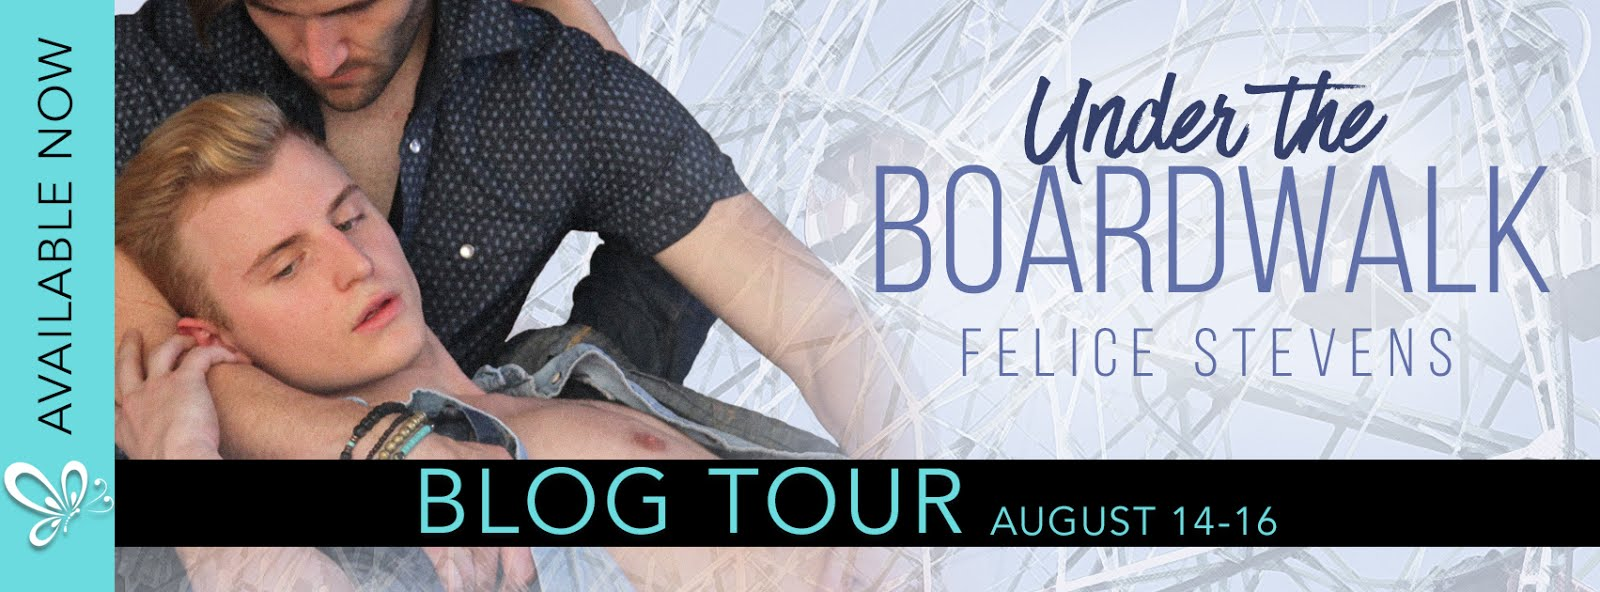 Under The Boardwalk Blog Tour